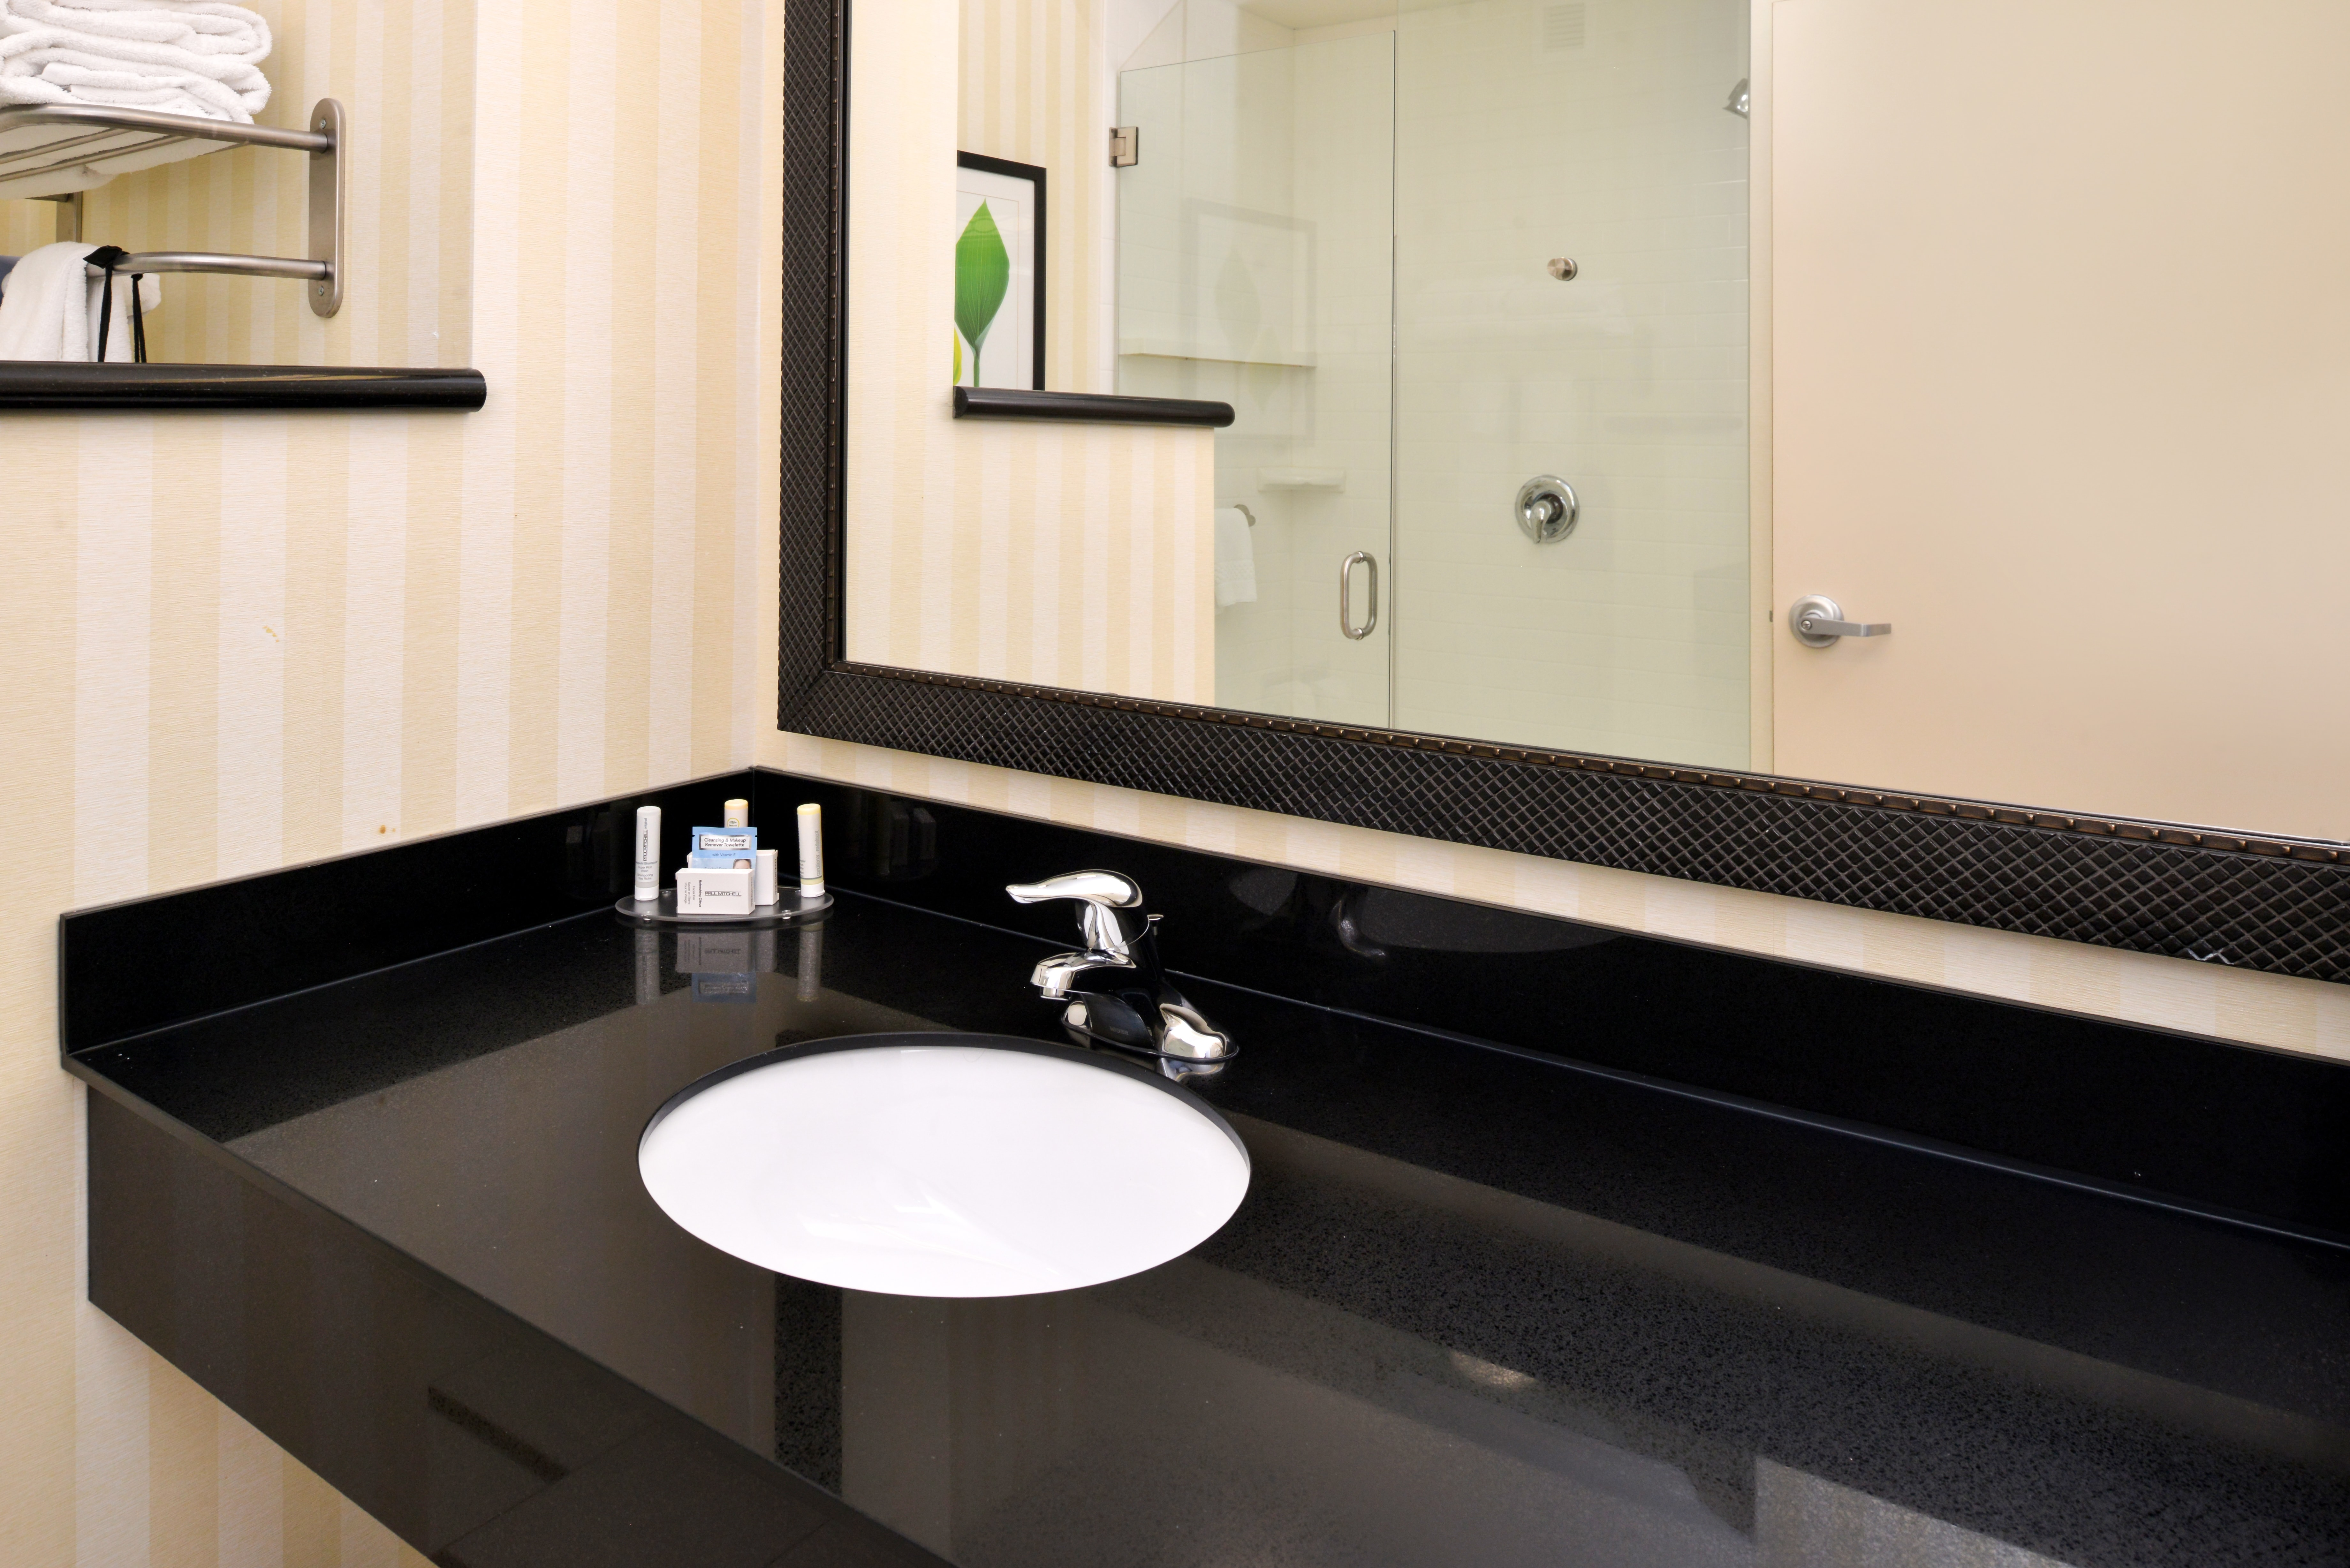 https://www.hotelsbyday.com/_data/default-hotel_image/3/15124/fis-cidcr-bathroom1.jpg